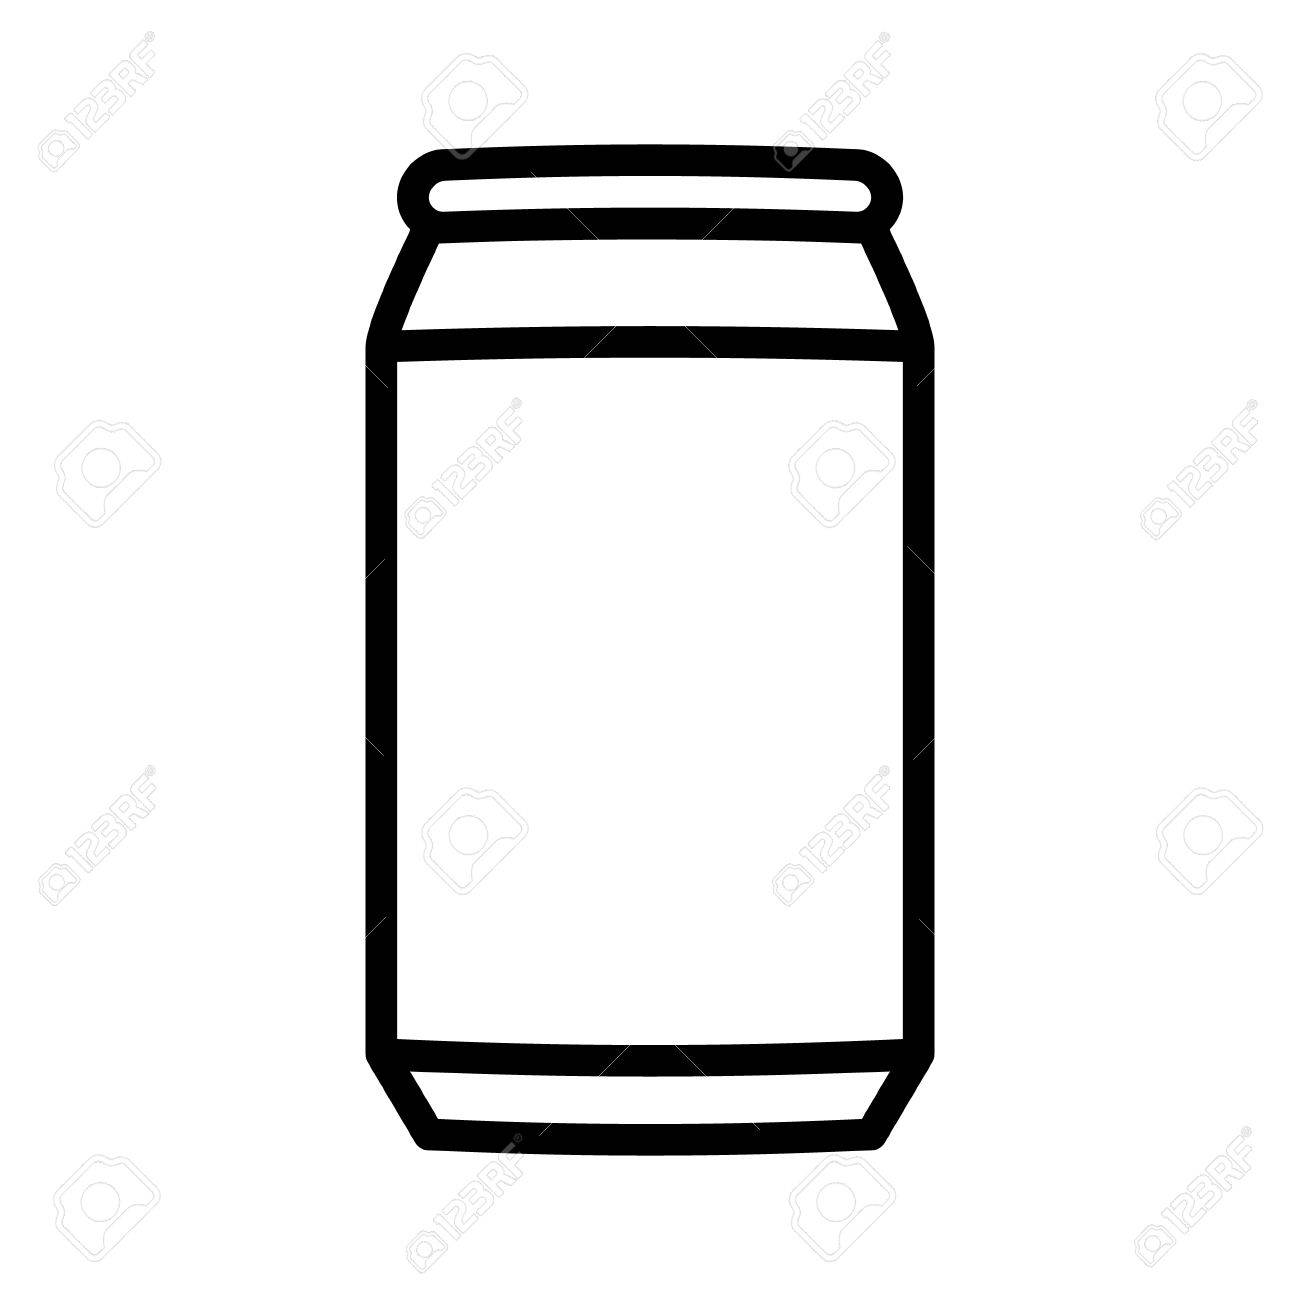 aluminum soda or beer can line art vector icon for apps and websites rh 123rf com blank beer can vector beer can vector image